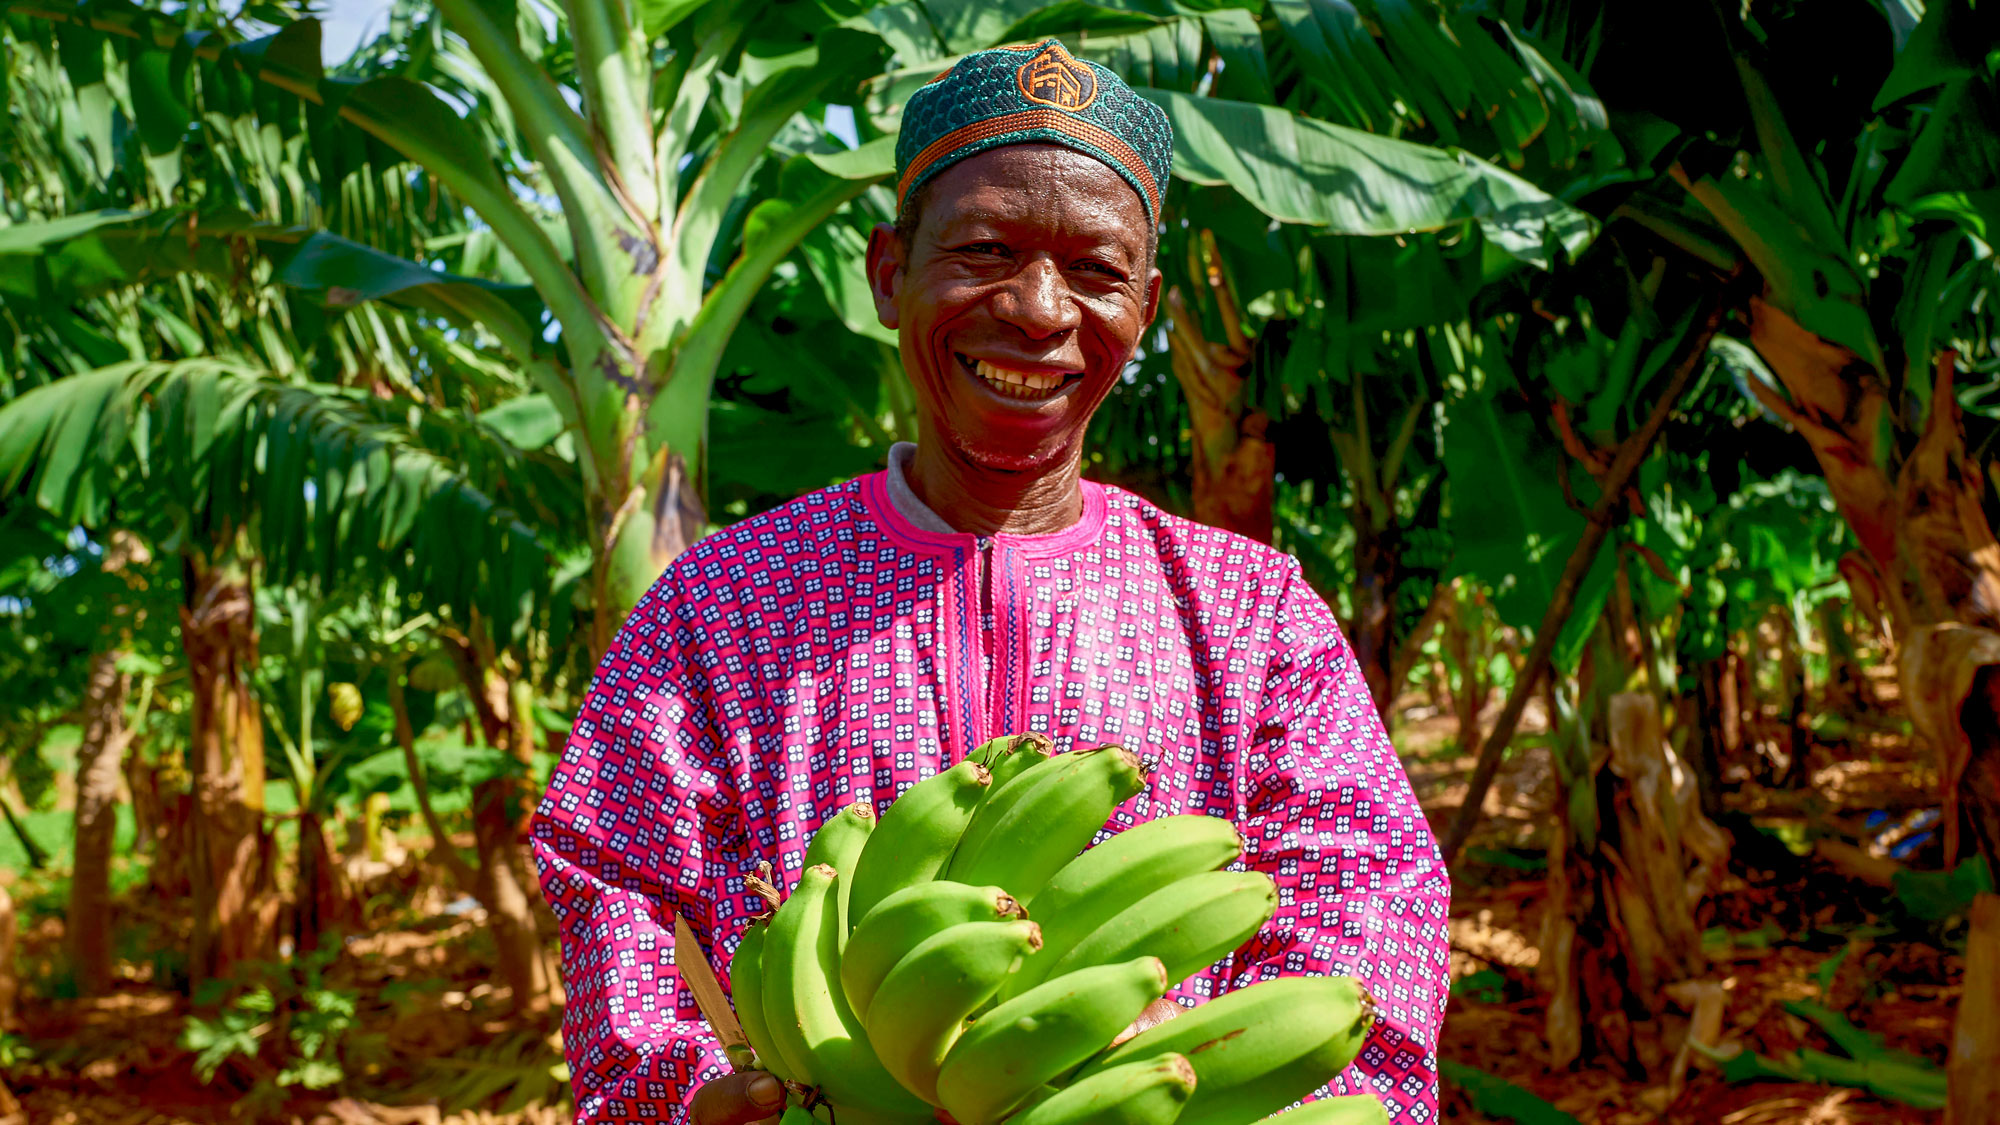 Smiling man holds a large bunch of bananas.